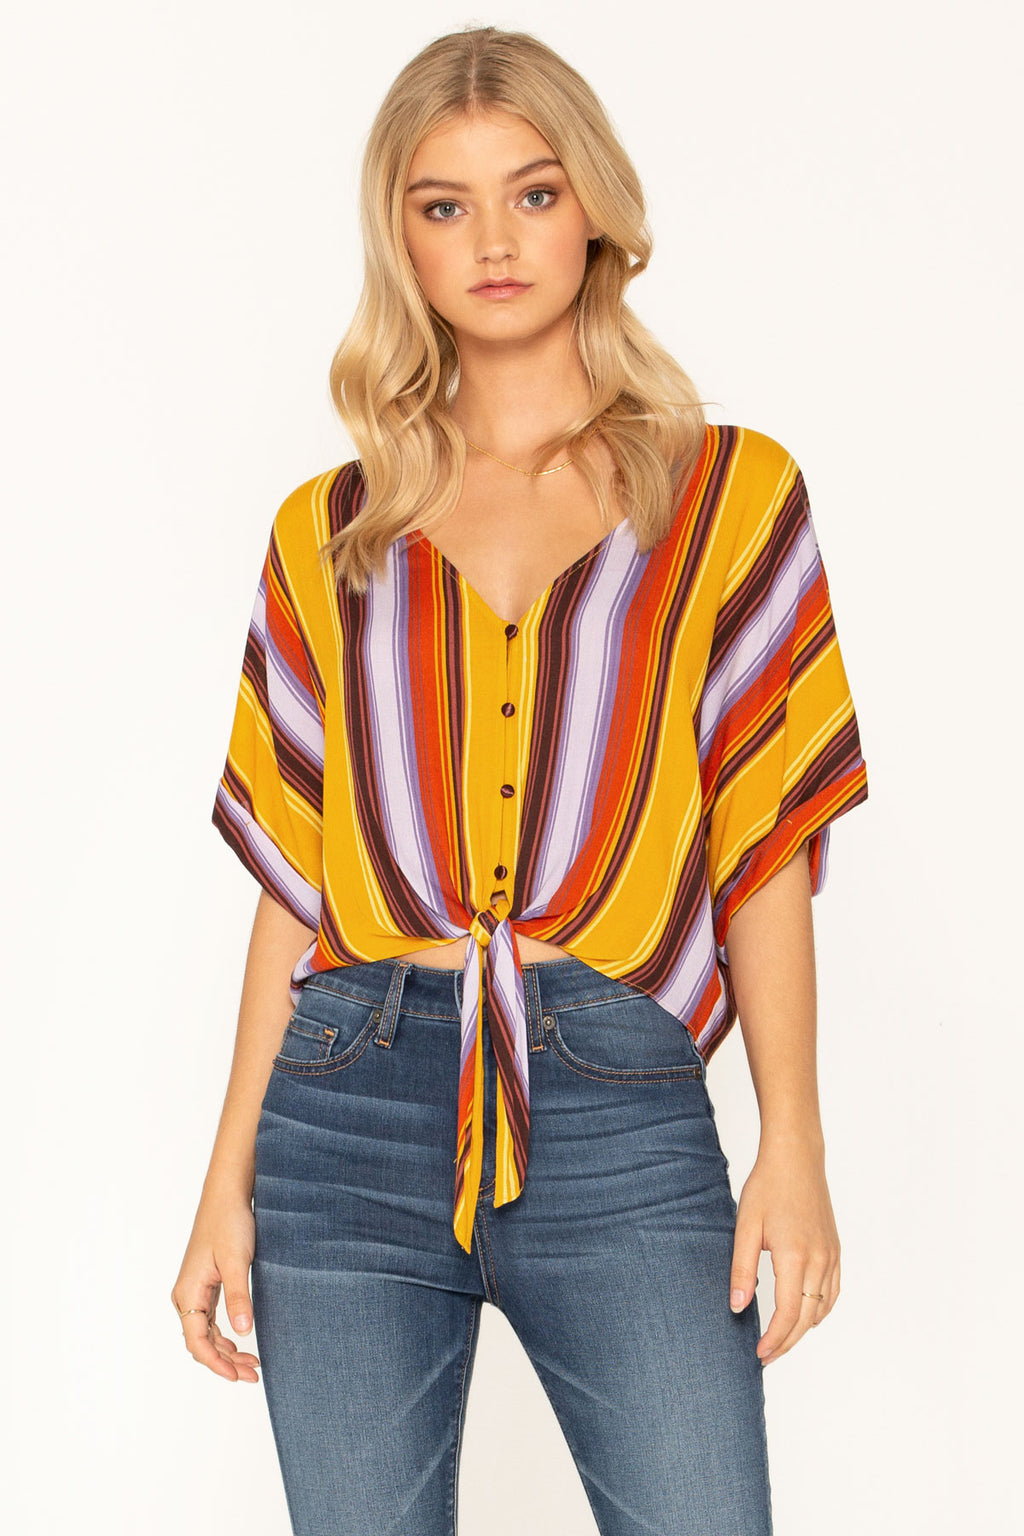 bfb152bf14ca4 GOLDEN HOUR MULTICOLOR SHORT SLEEVE TOP